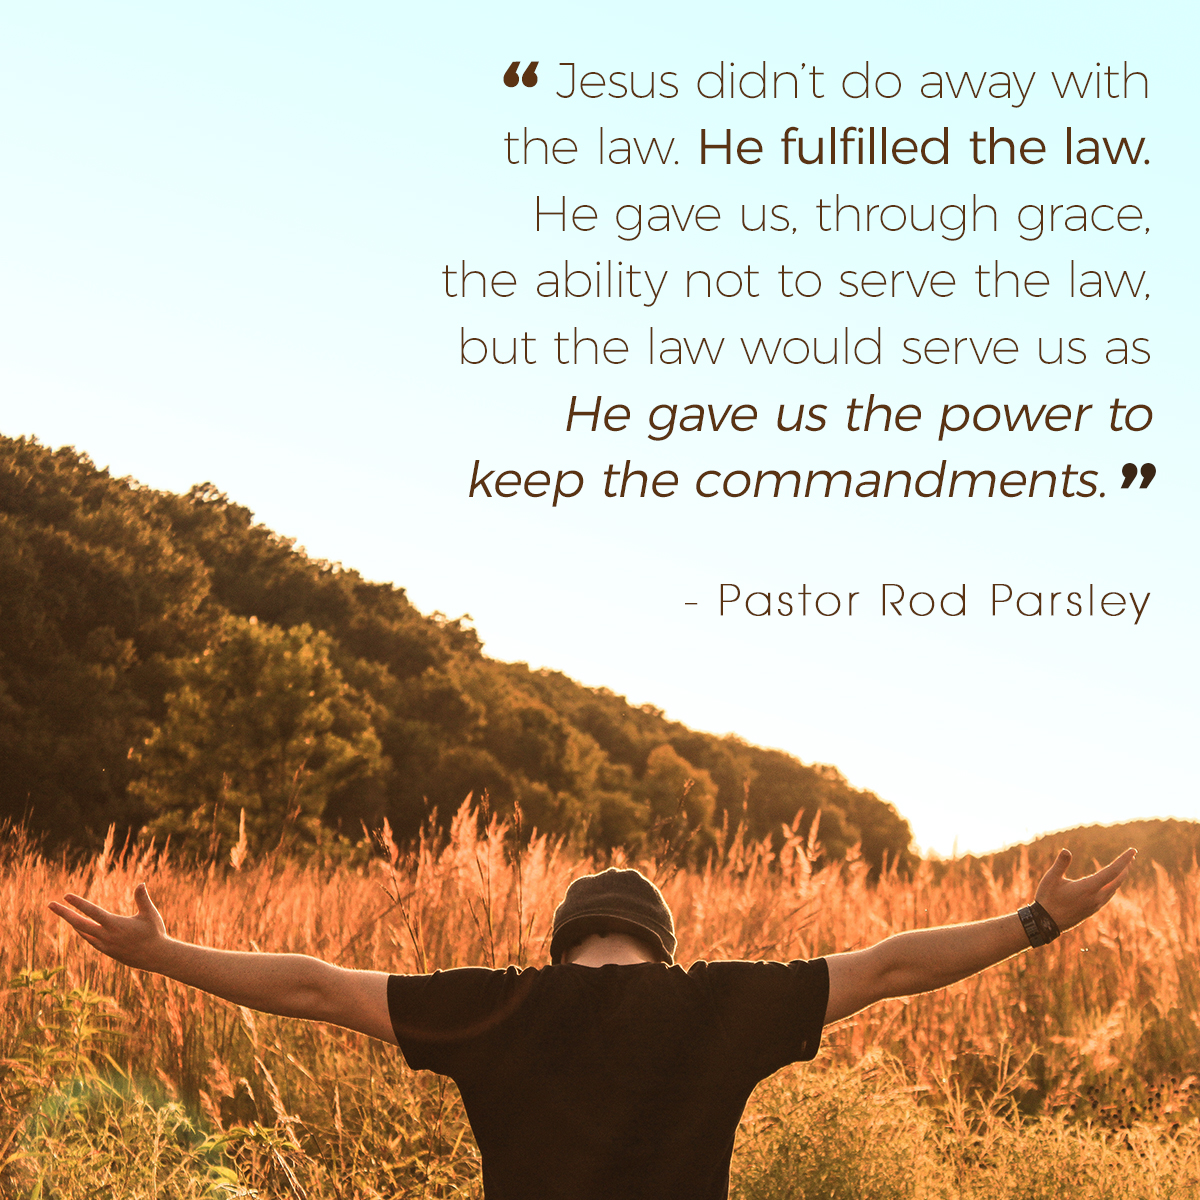 """Jesus didn't do away with the law. He fulfilled the law. He gave us, through grace, the ability not to serve the law, but the law would serve us as He gave us the power to keep the commandments."" – Pastor Rod Parsley"